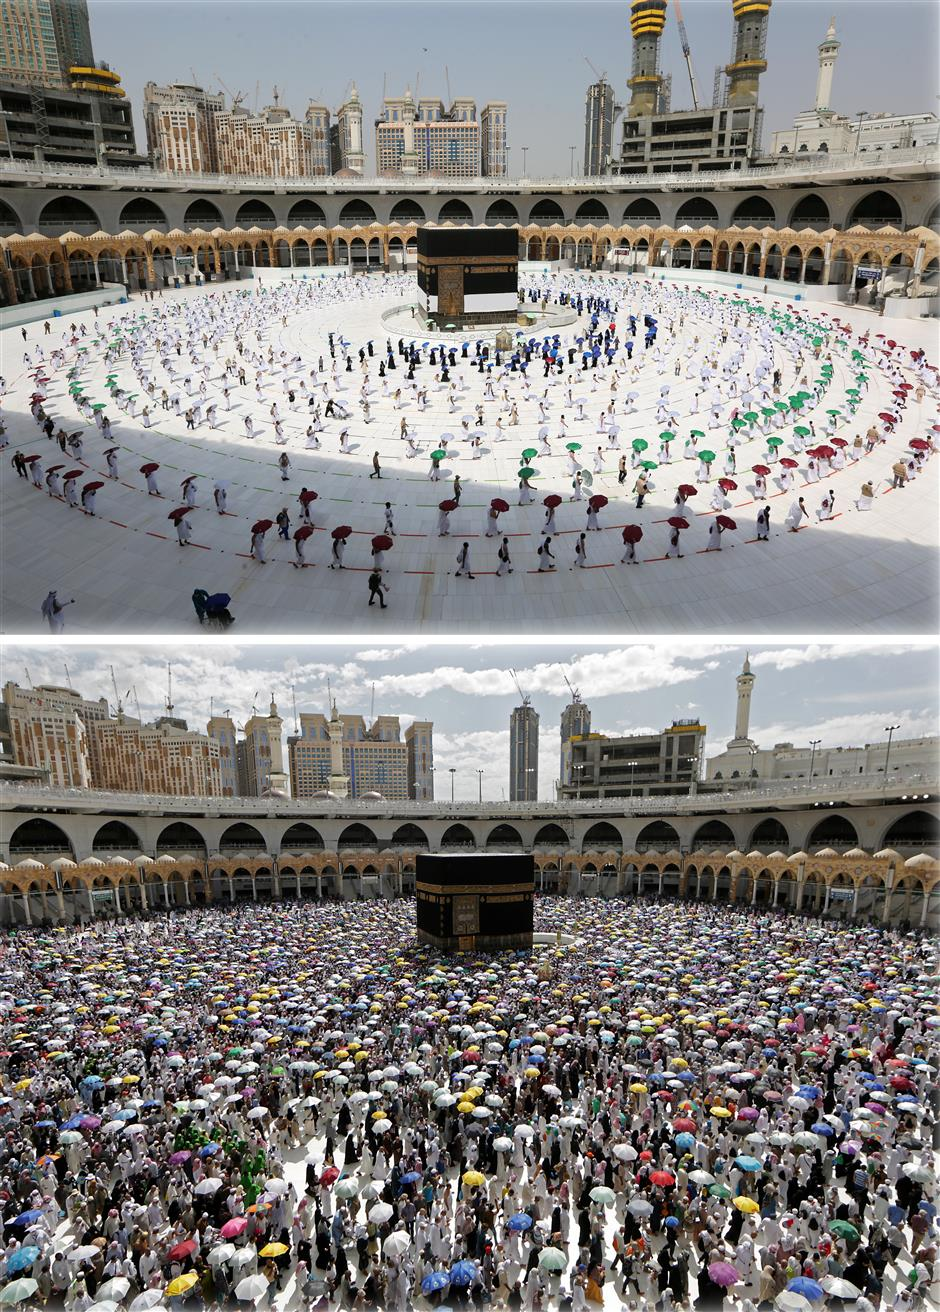 Pilgrims keep at a distance in Mecca for hajj